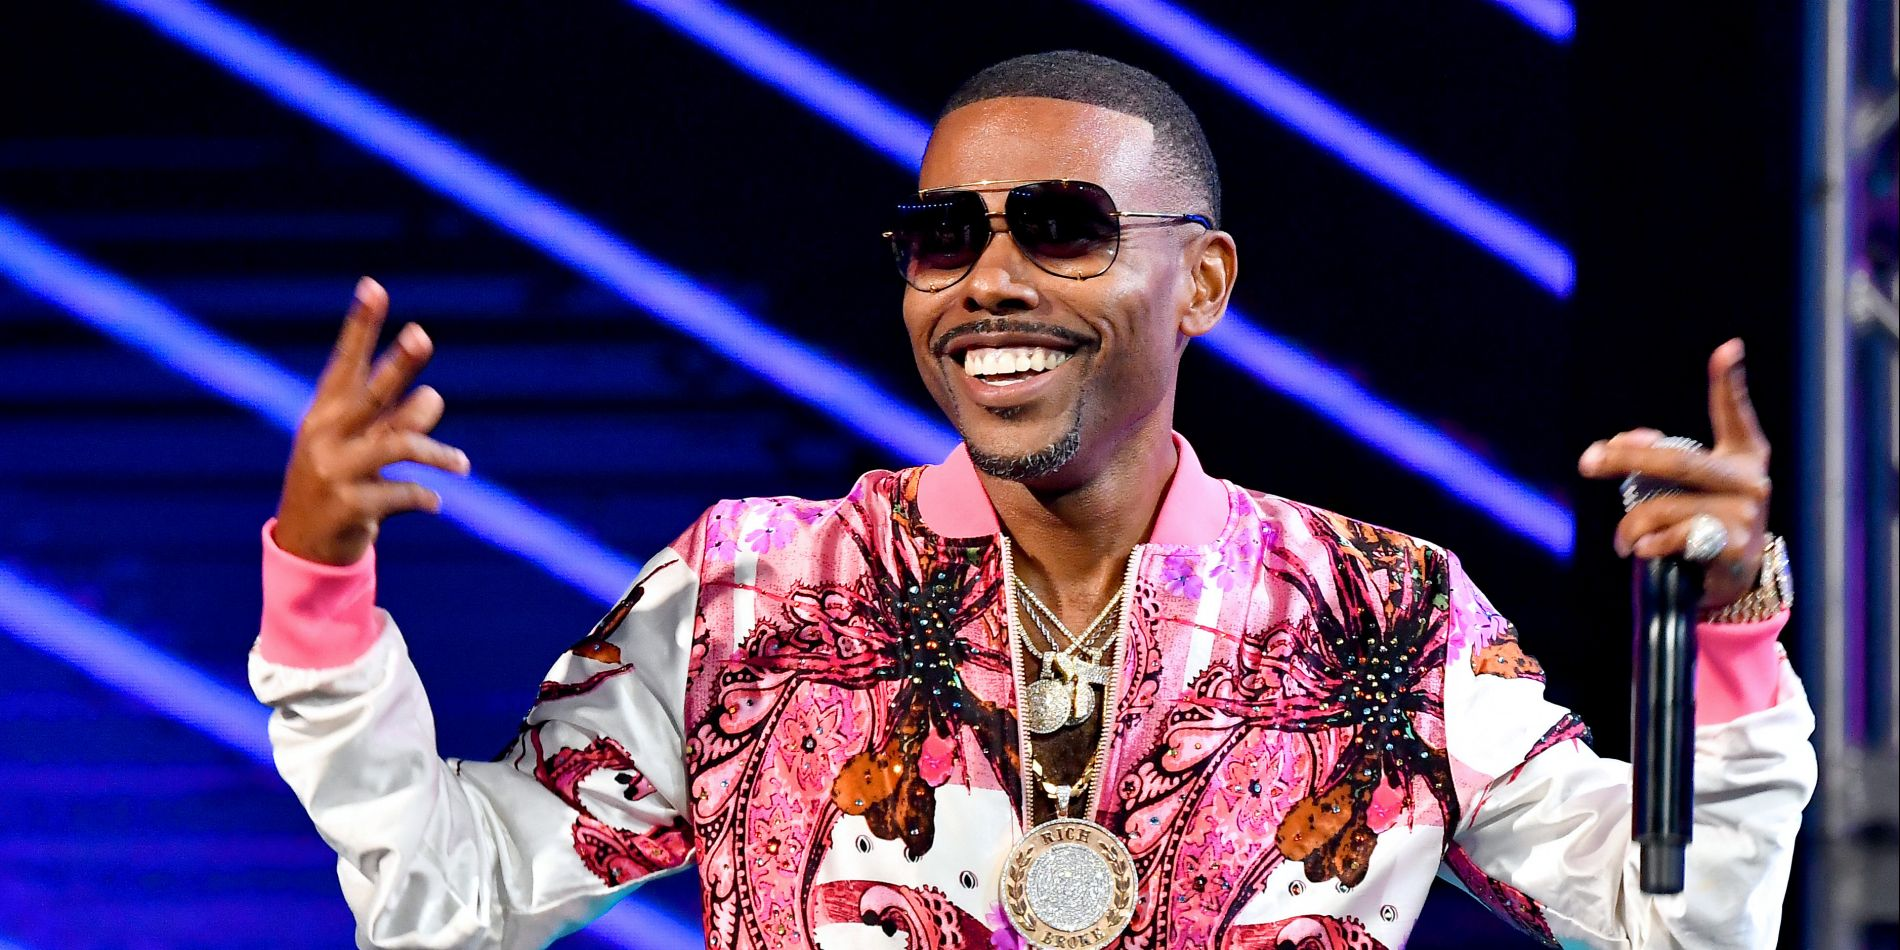 Lil Duval To Host 2019 Bet Hip Hop Awards Alexus Renee Celebrity Myxer